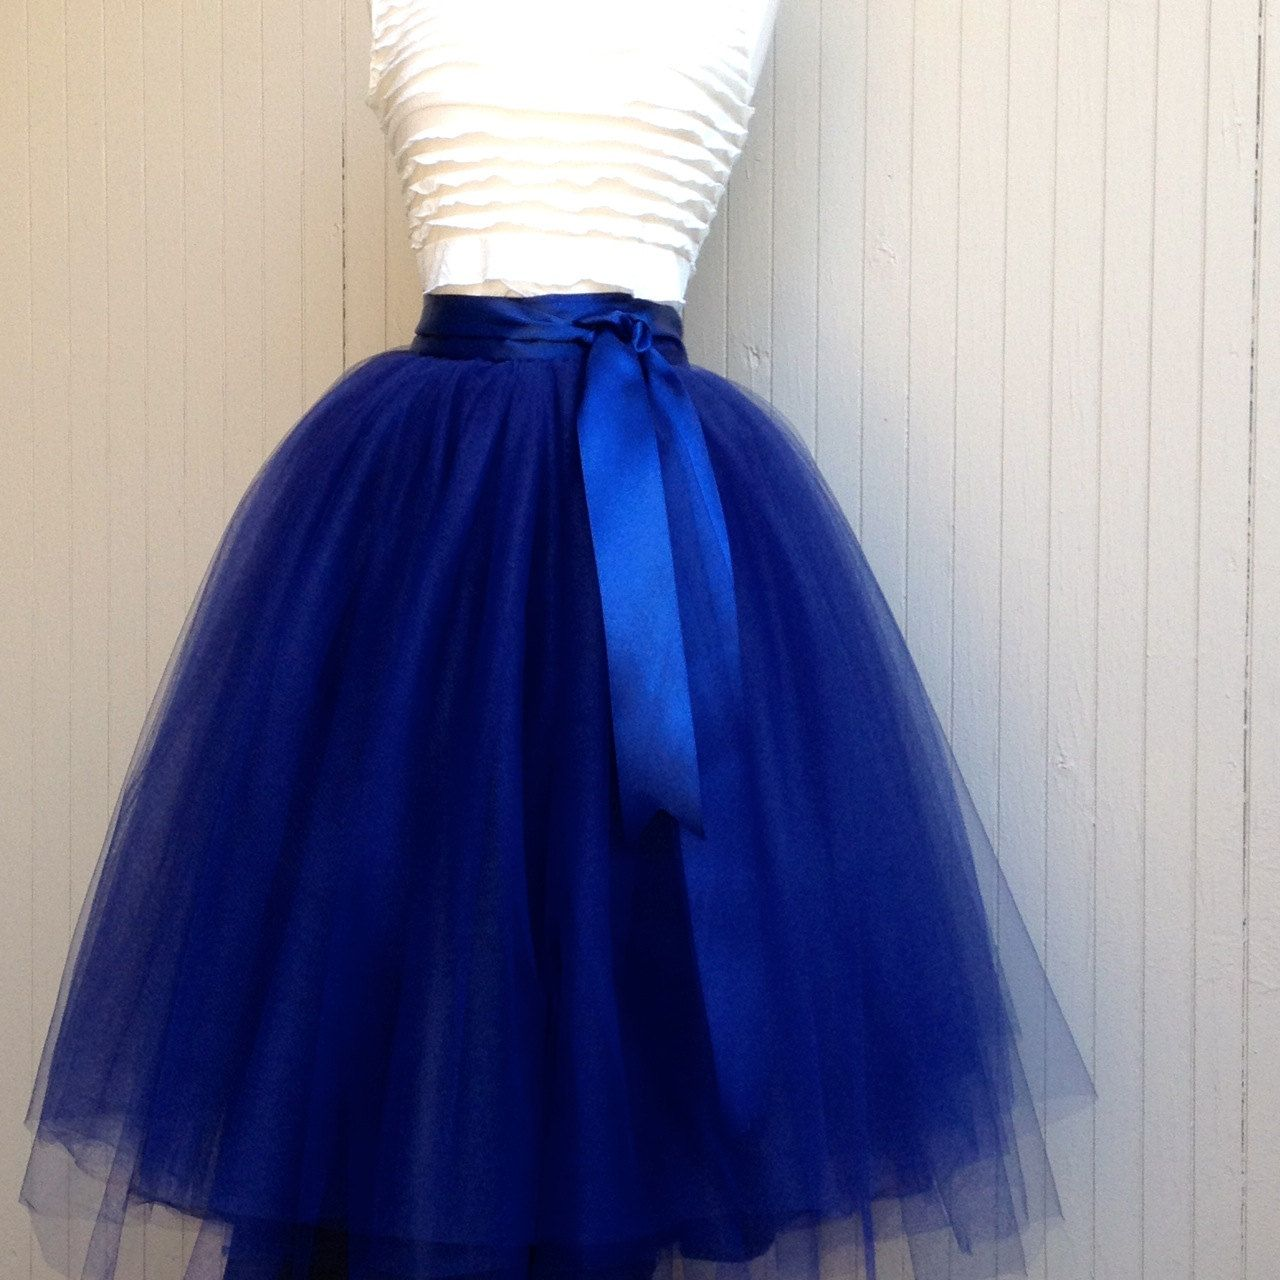 3e68c76f80 Navy blue tulle skirt tutu for women lined in black satin with a navy satin  ribbon waist. Fall fashion trend.. $165.00, via Etsy.